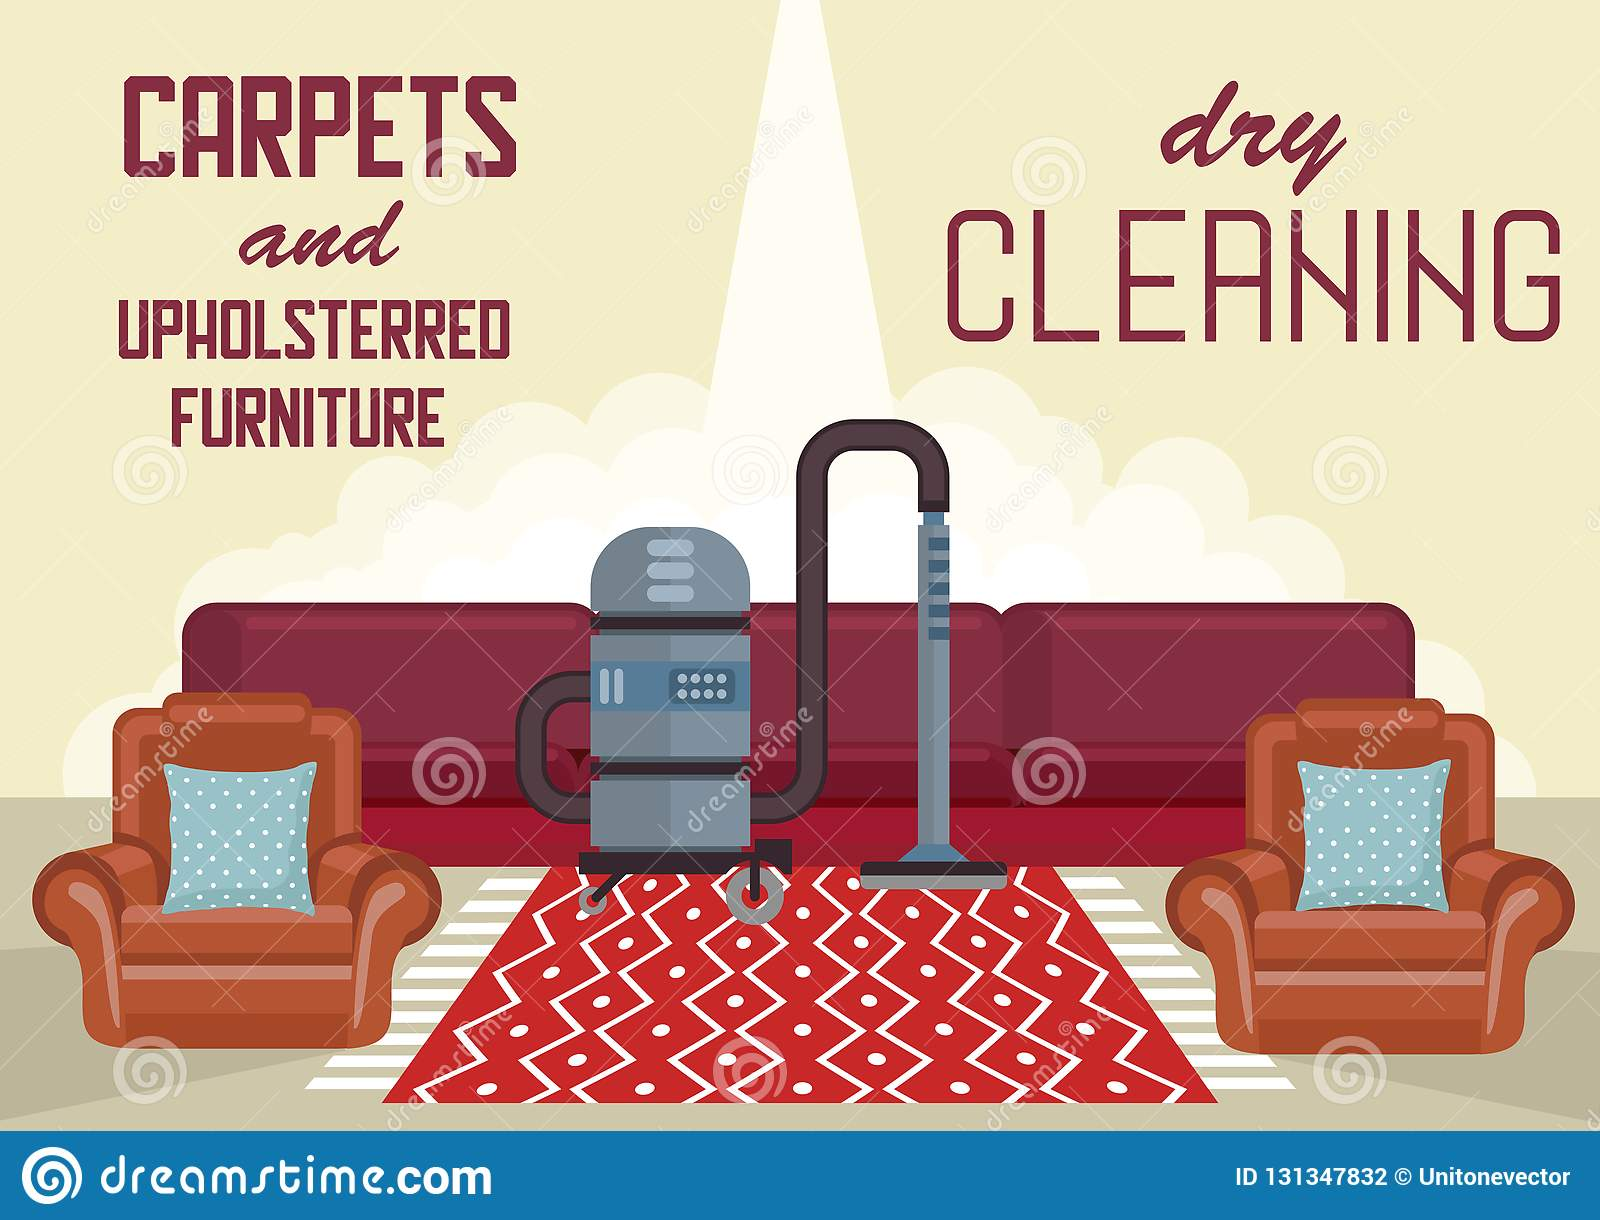 How To Dry Clean Sofa At Home Dry Cleaning Carpets And Upholstered Furniture Stock Vector